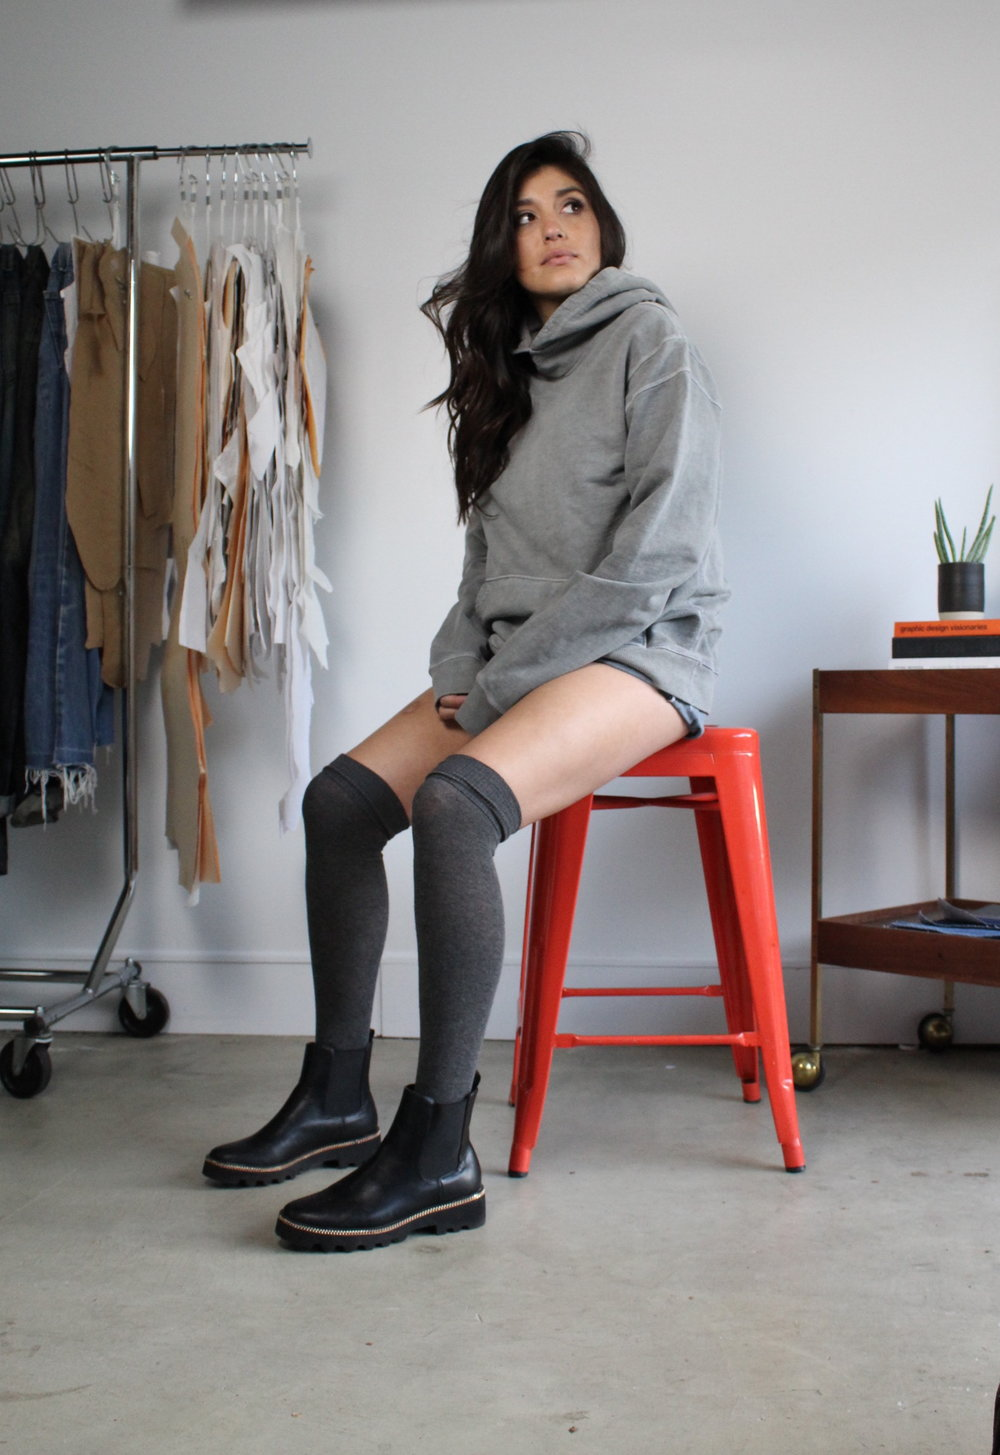 alex-allen-hoodie-french-terry-vintage-black-made-in-usa-uinsex-santana-social-club-eames-chair-vintage-grey-garment-dyed-stonewashed-womenswear-menswear-los-angeles-rams.JPG